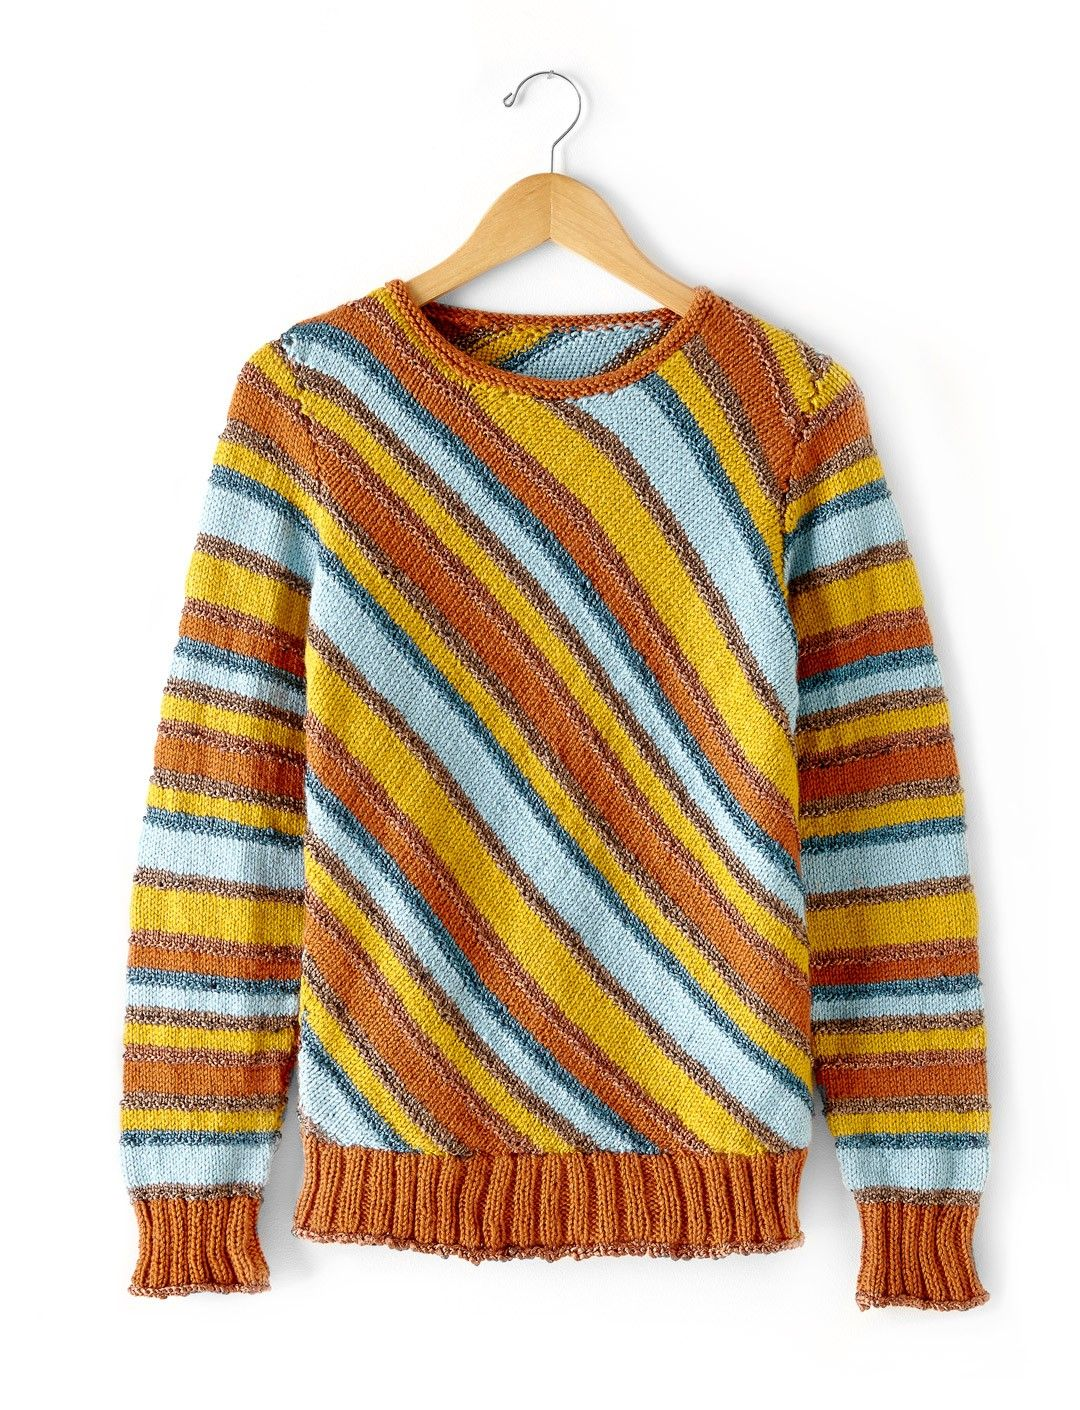 Diagonal Stripes Sweater | Knit in a unique mix of traditional ...